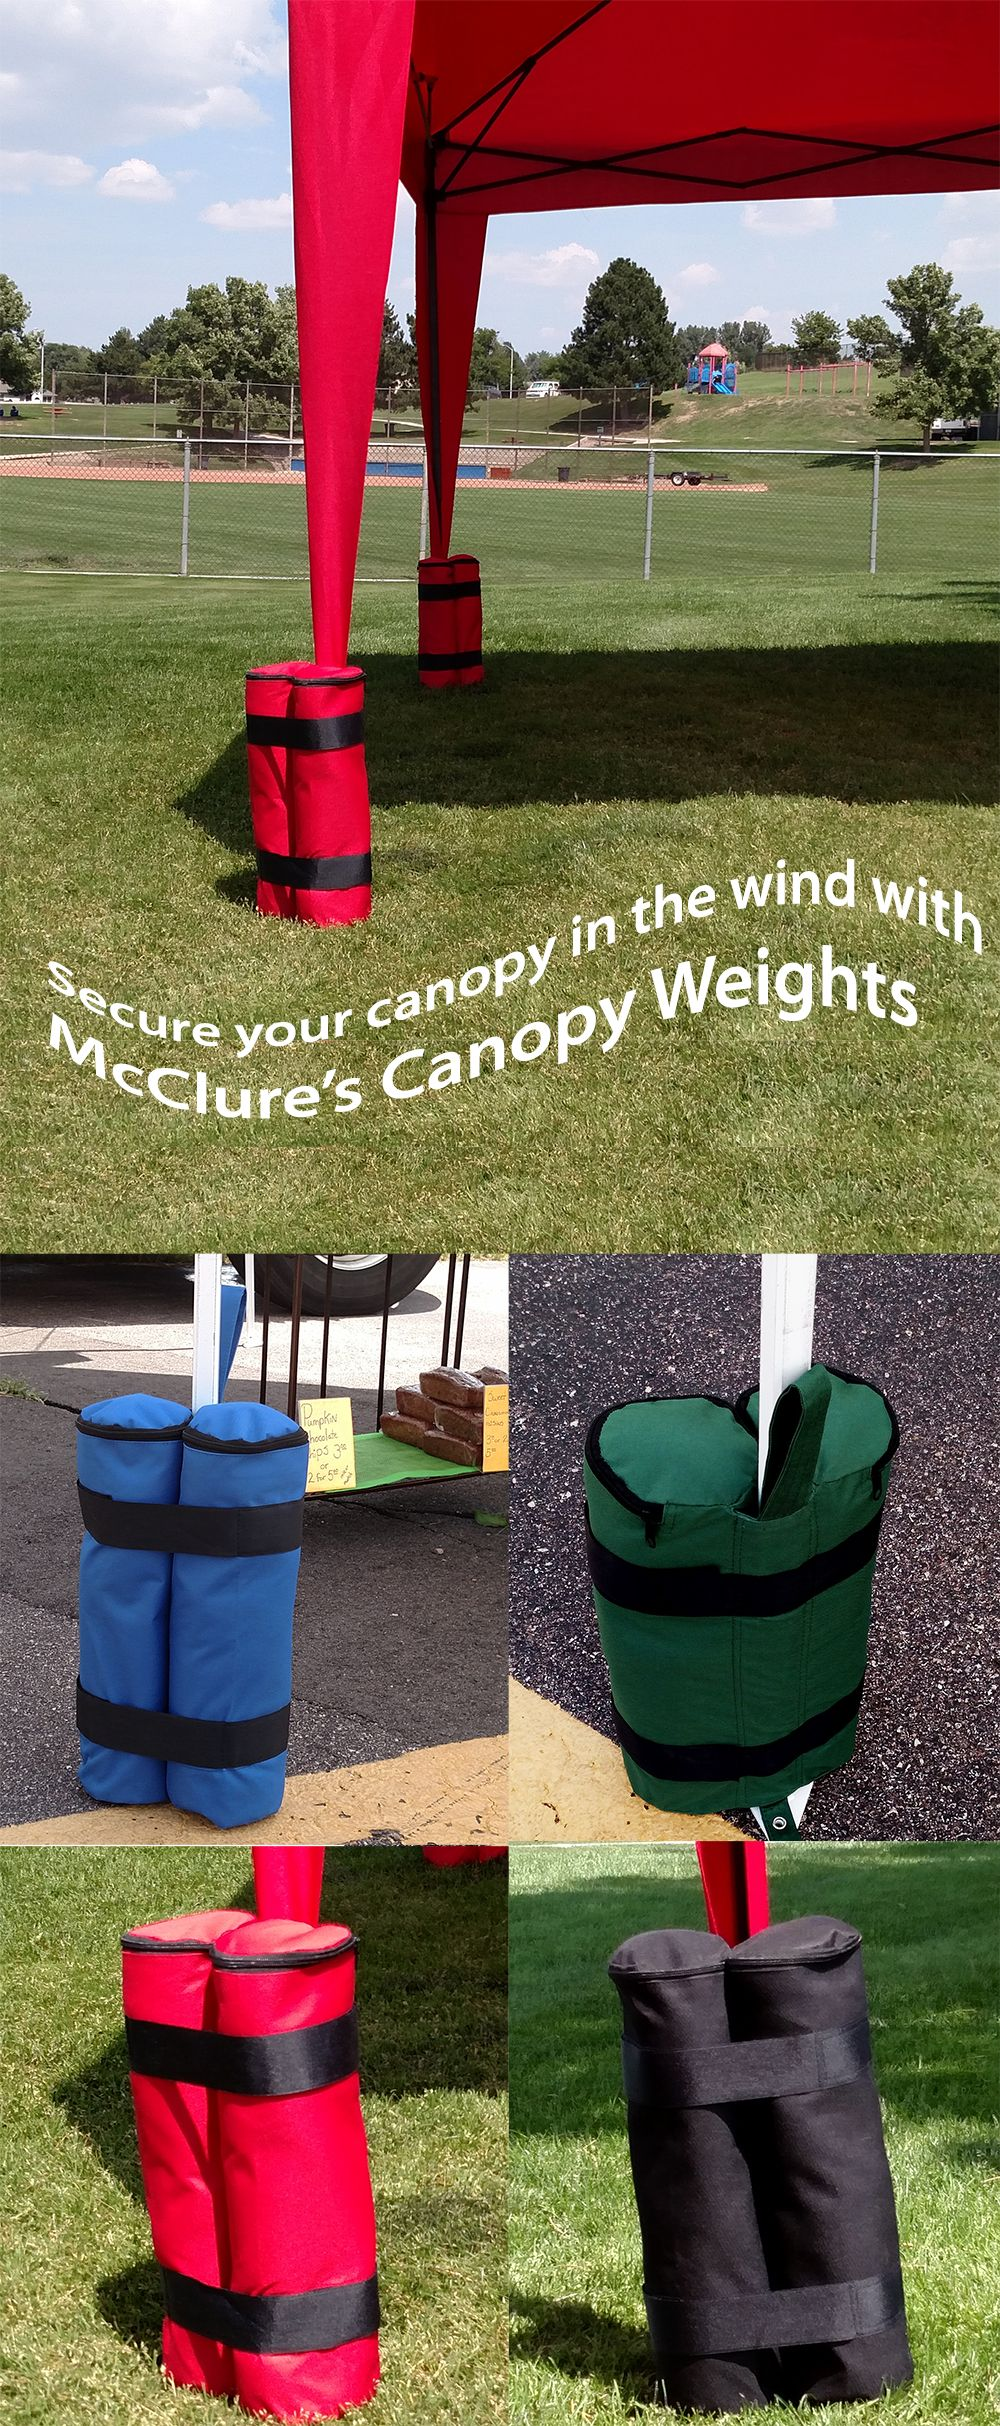 Weight Bags For Canopies Tents Awnings Mcclure S Canopy Weight